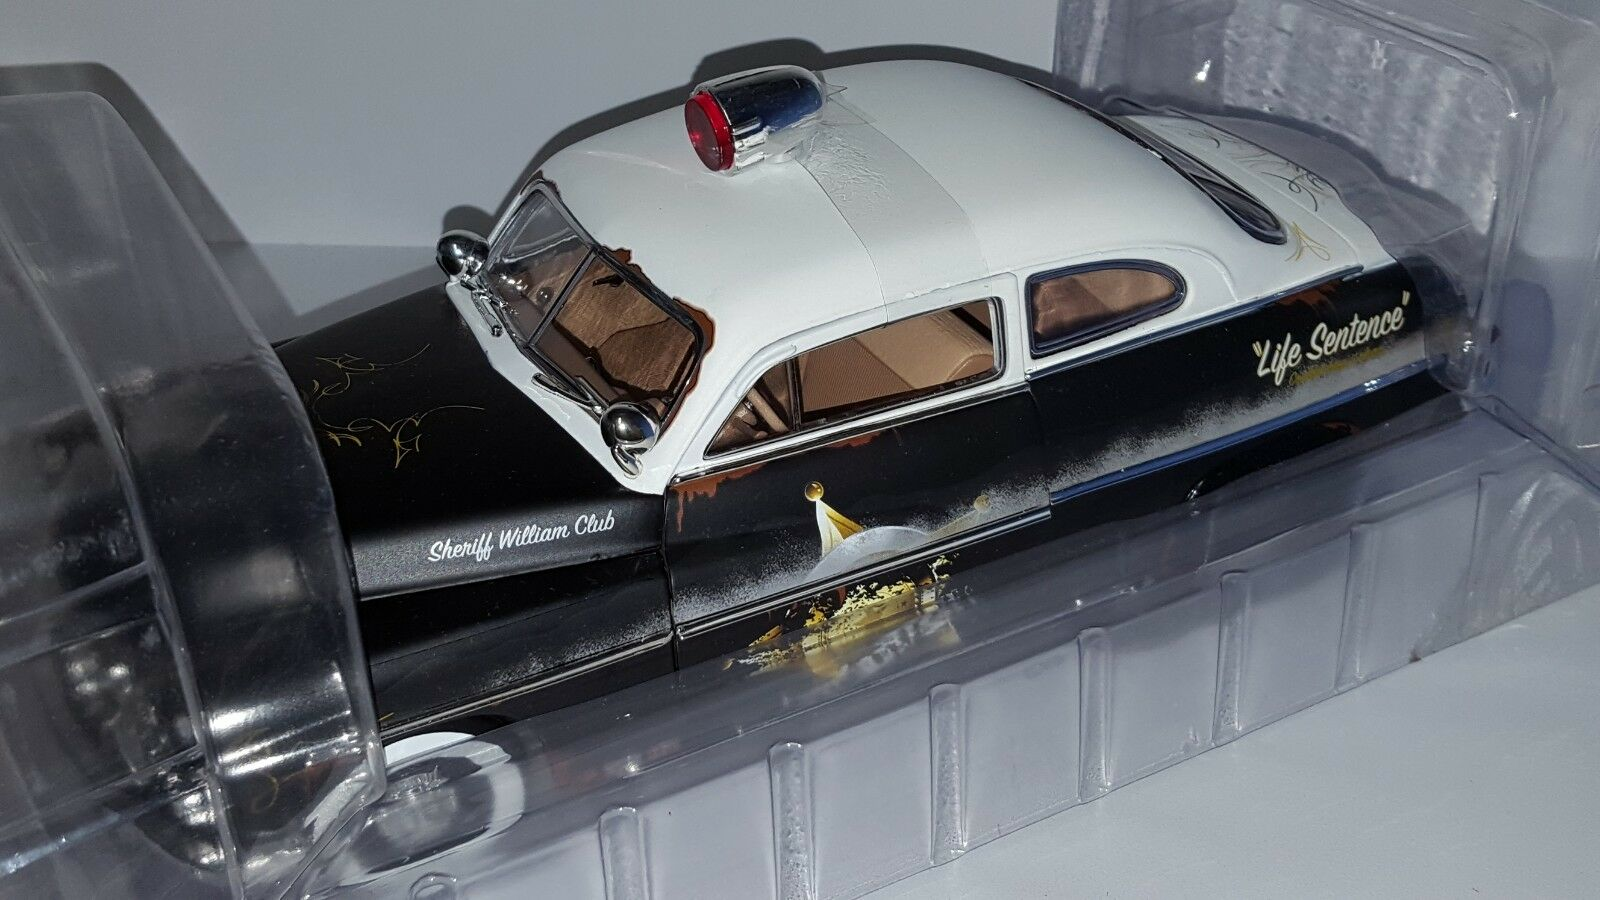 1 18 ERTL AMERICAN MUSCLE 20th ELITE EDITION EDITION EDITION 1949 MERCURY COUPE RAT ROD rd 389580